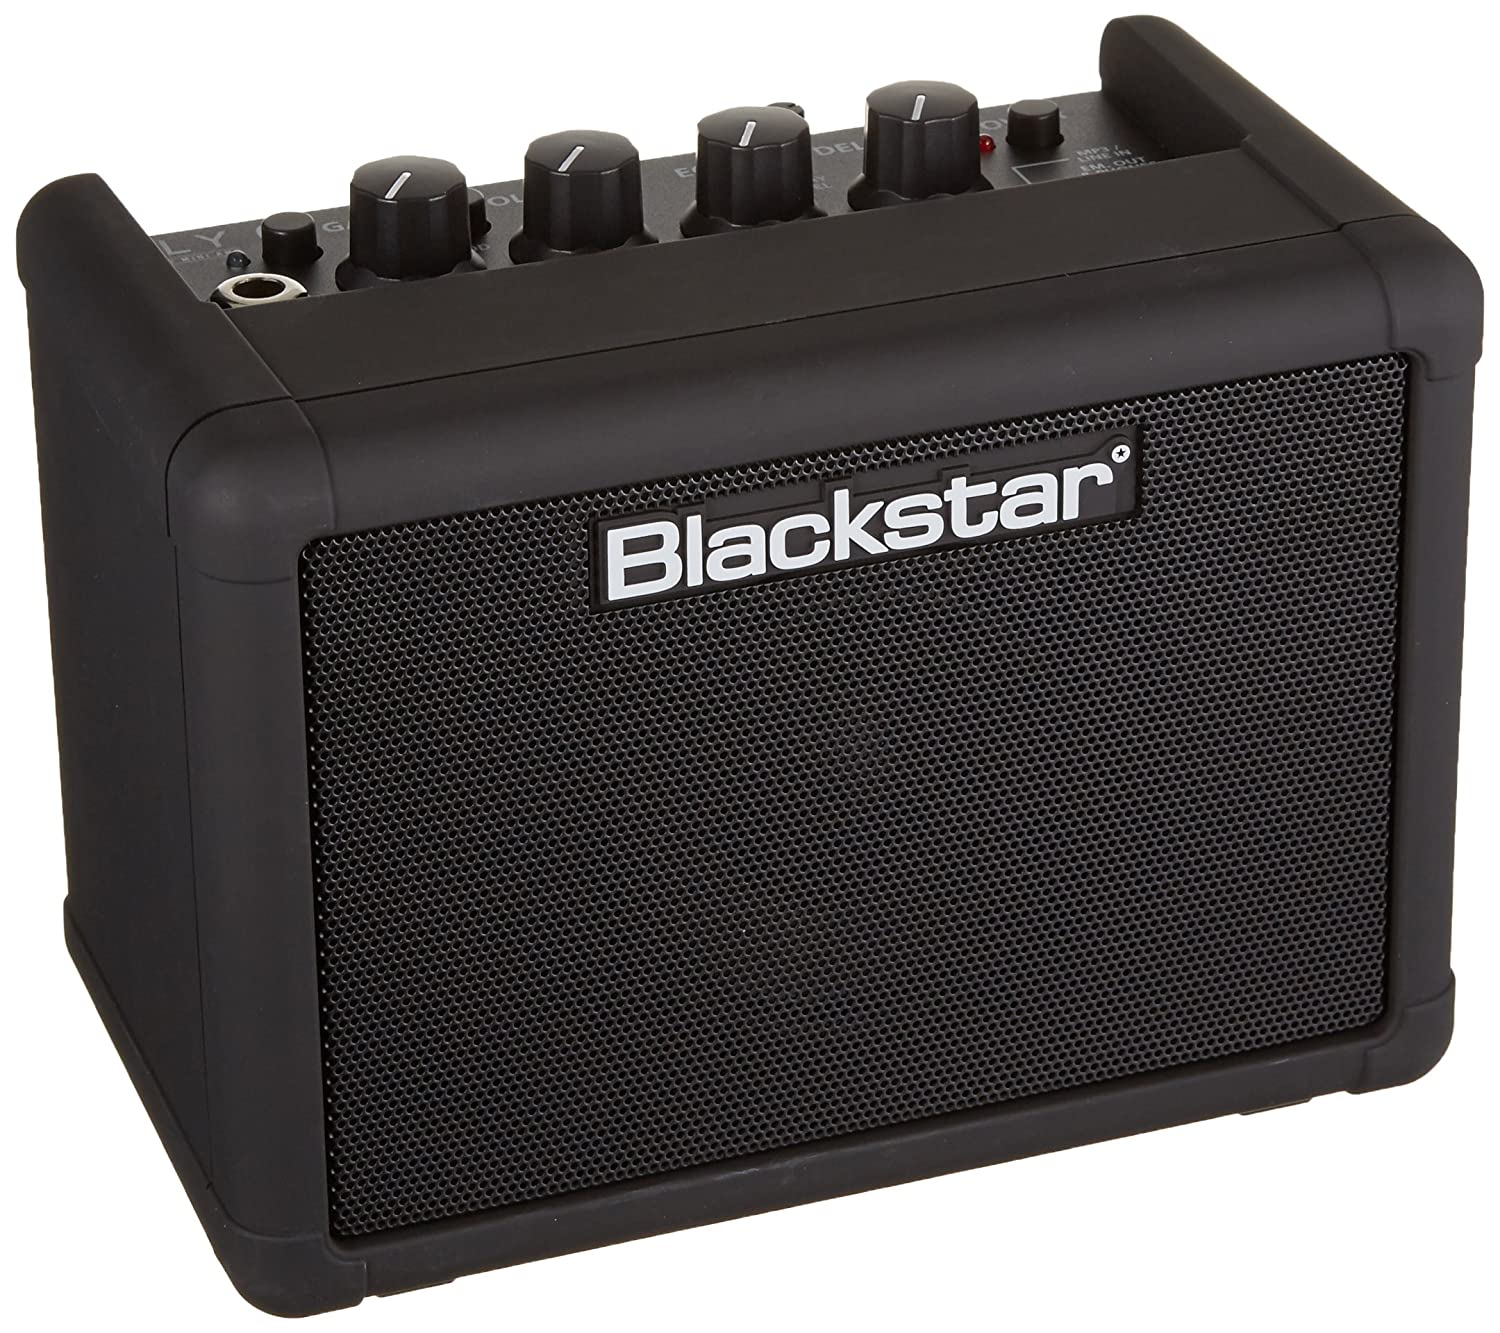 10. Blackstar FLY3BLUE Bluetooth Mini Amplifier - Best Budget Portable Option